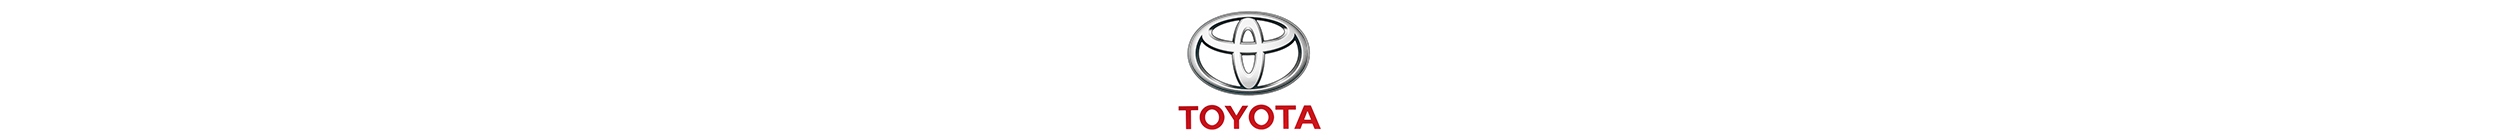 Toyota Long.png